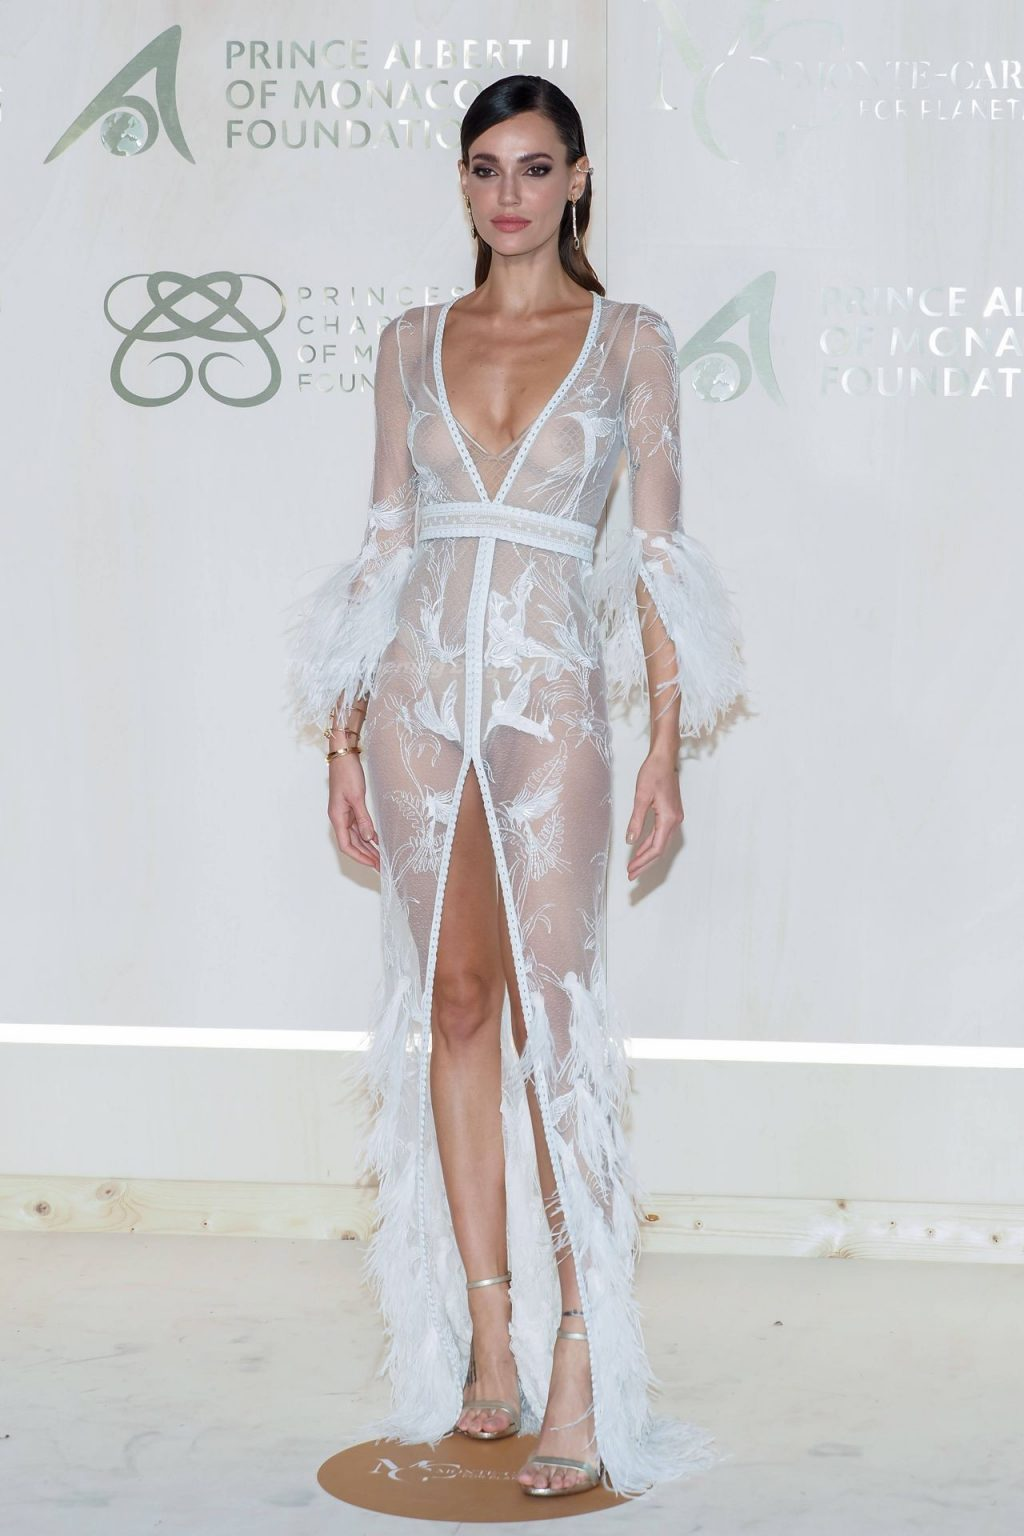 Marianne Fonseca Poses in a See-Through Dress the 2021 Monte-Carlo Gala (5 Photos)